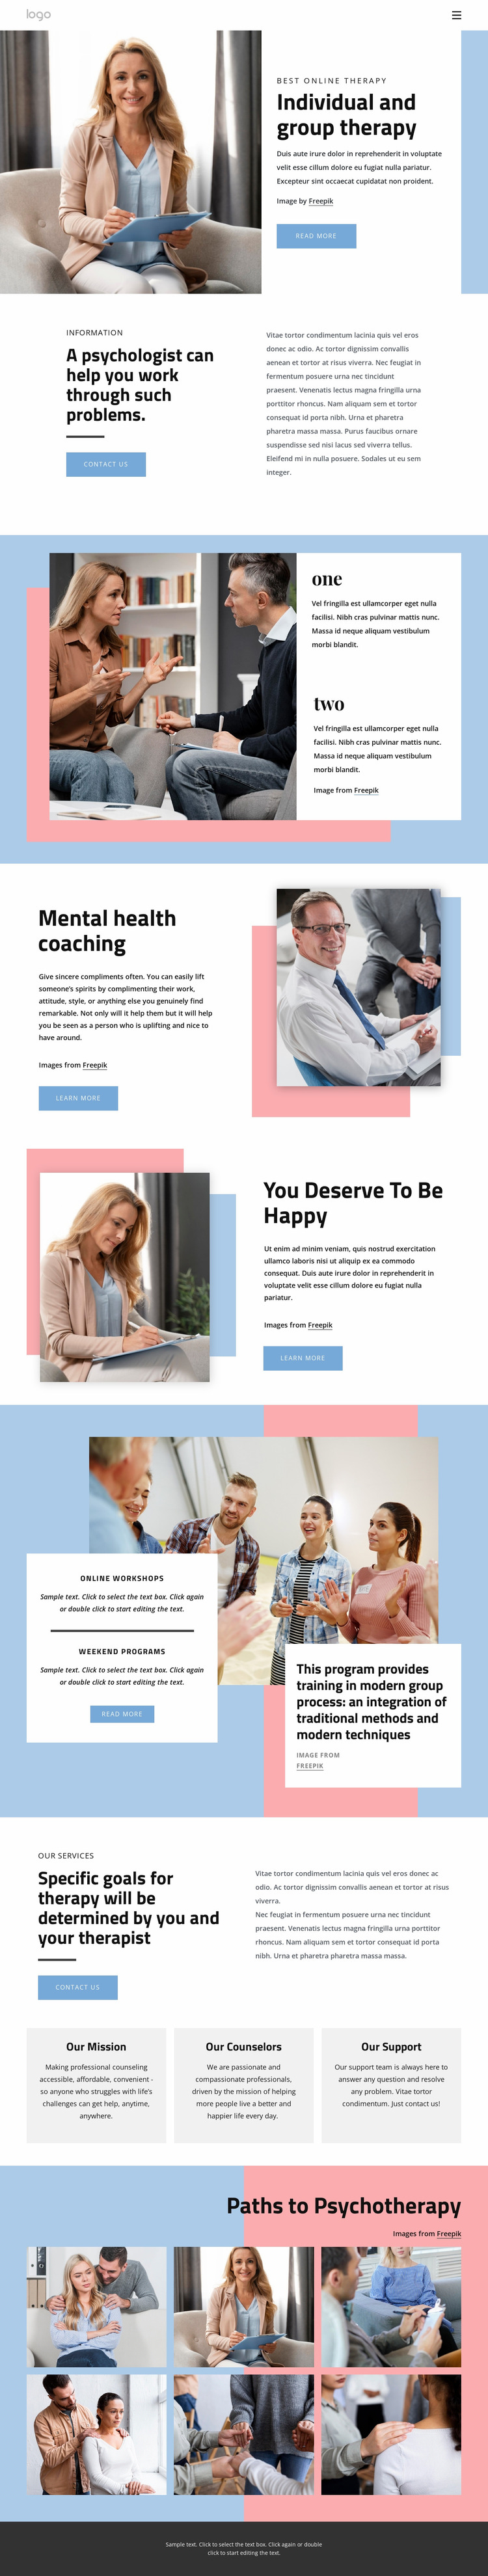 Undividual and group therapy Website Mockup